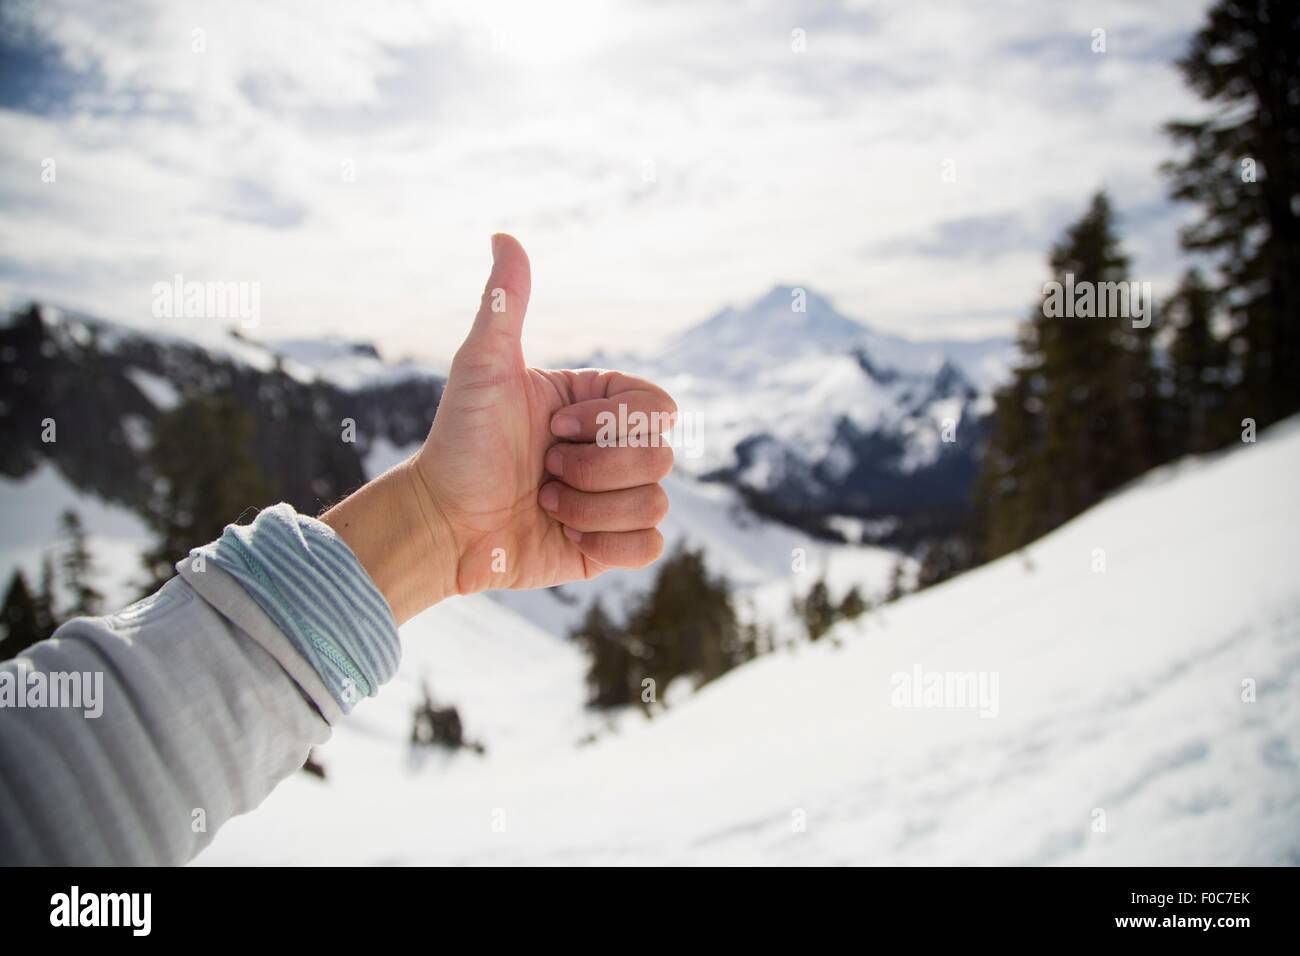 Female hand making thumbs up in front of snow covered view, Mount Baker, Washington, USA - Stock Image